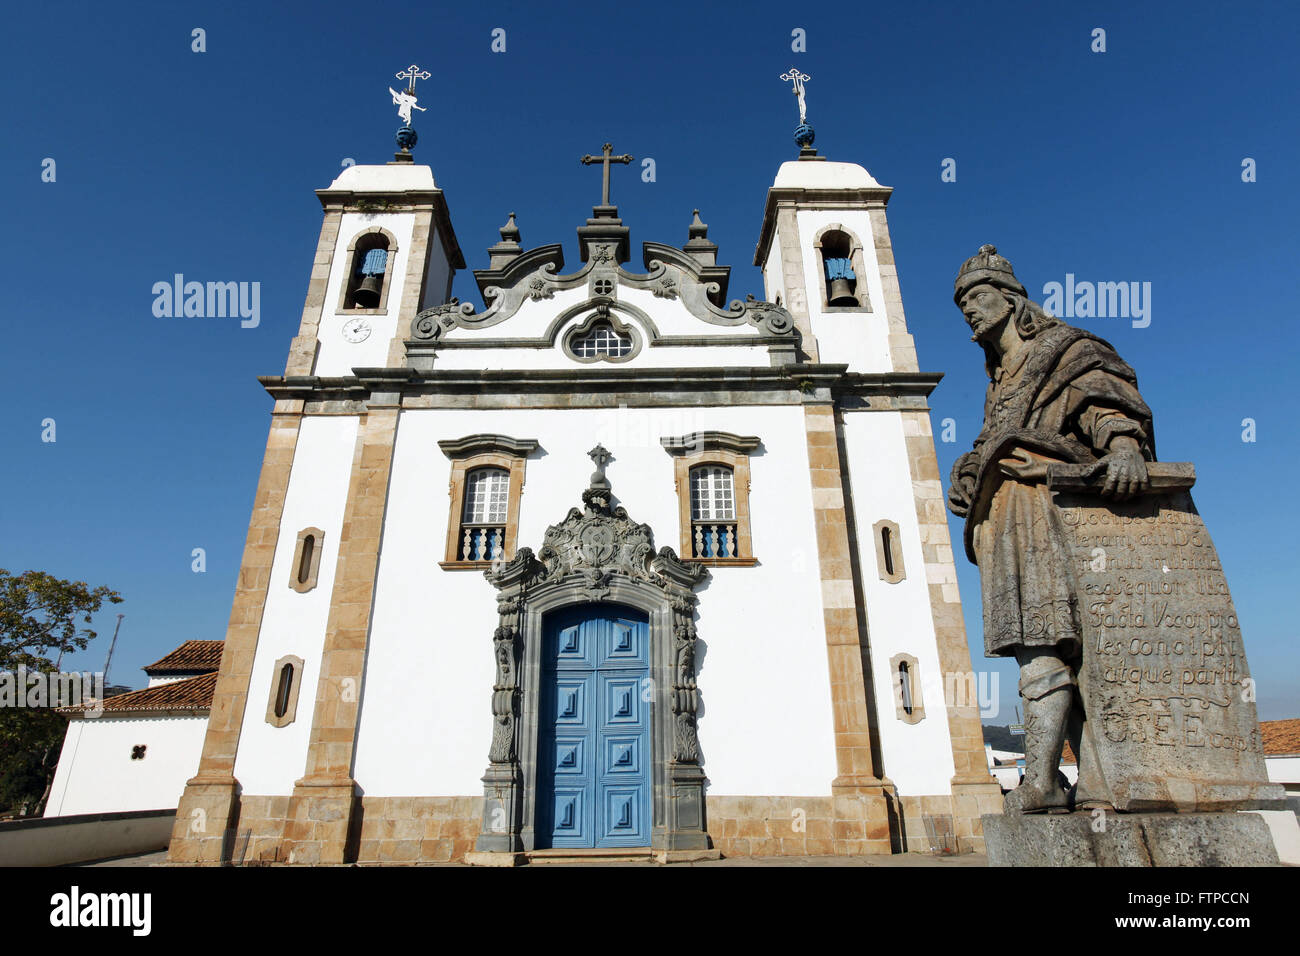 Sculpture carved by the Prophet Hosea Aleijadinho in Congonhas - MG - Stock Image